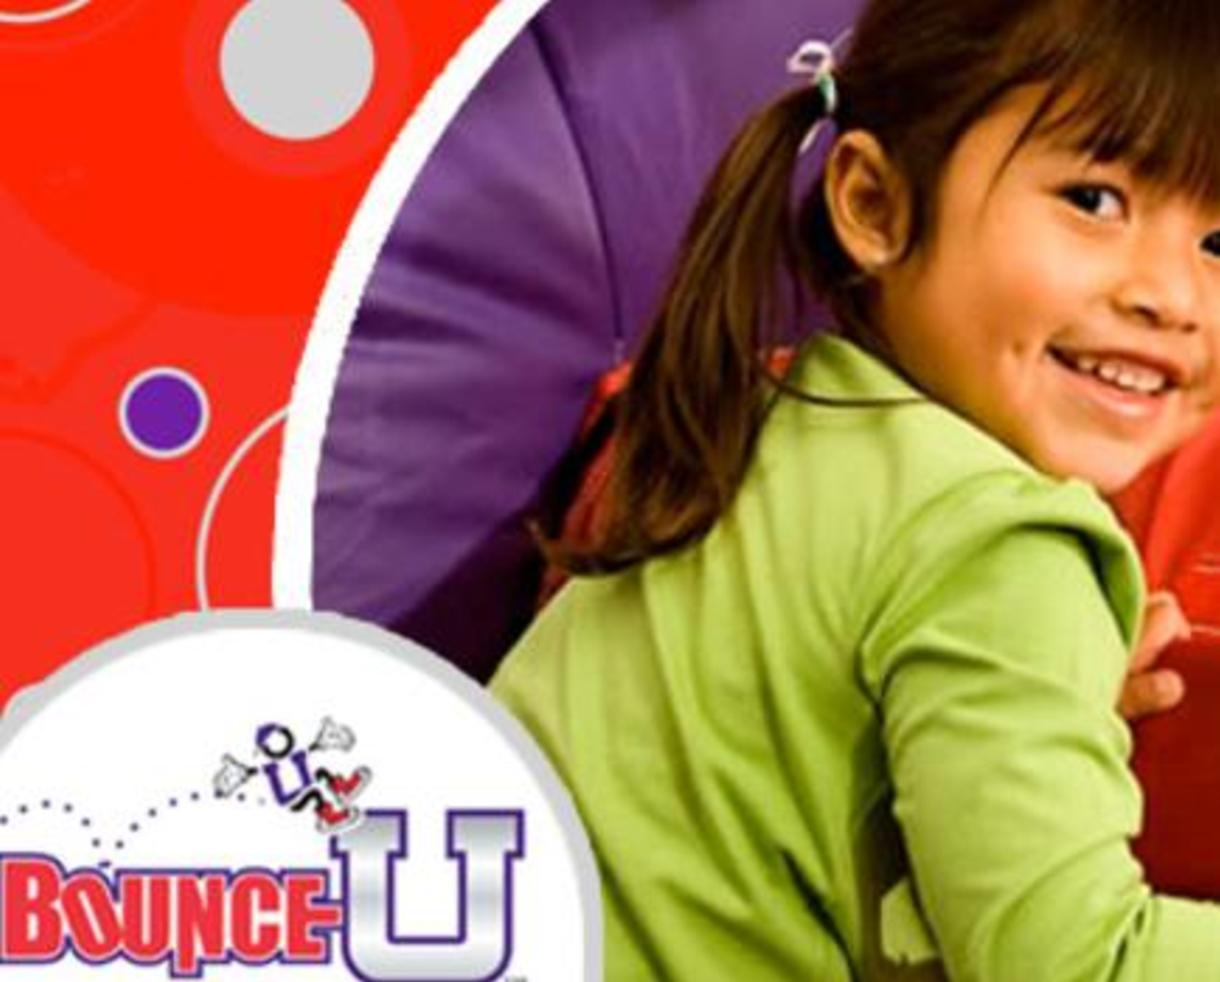 $40 for BounceU TECHNOLOGY Winter Break Camp - Rockville or Clarksburg (28% Off!)